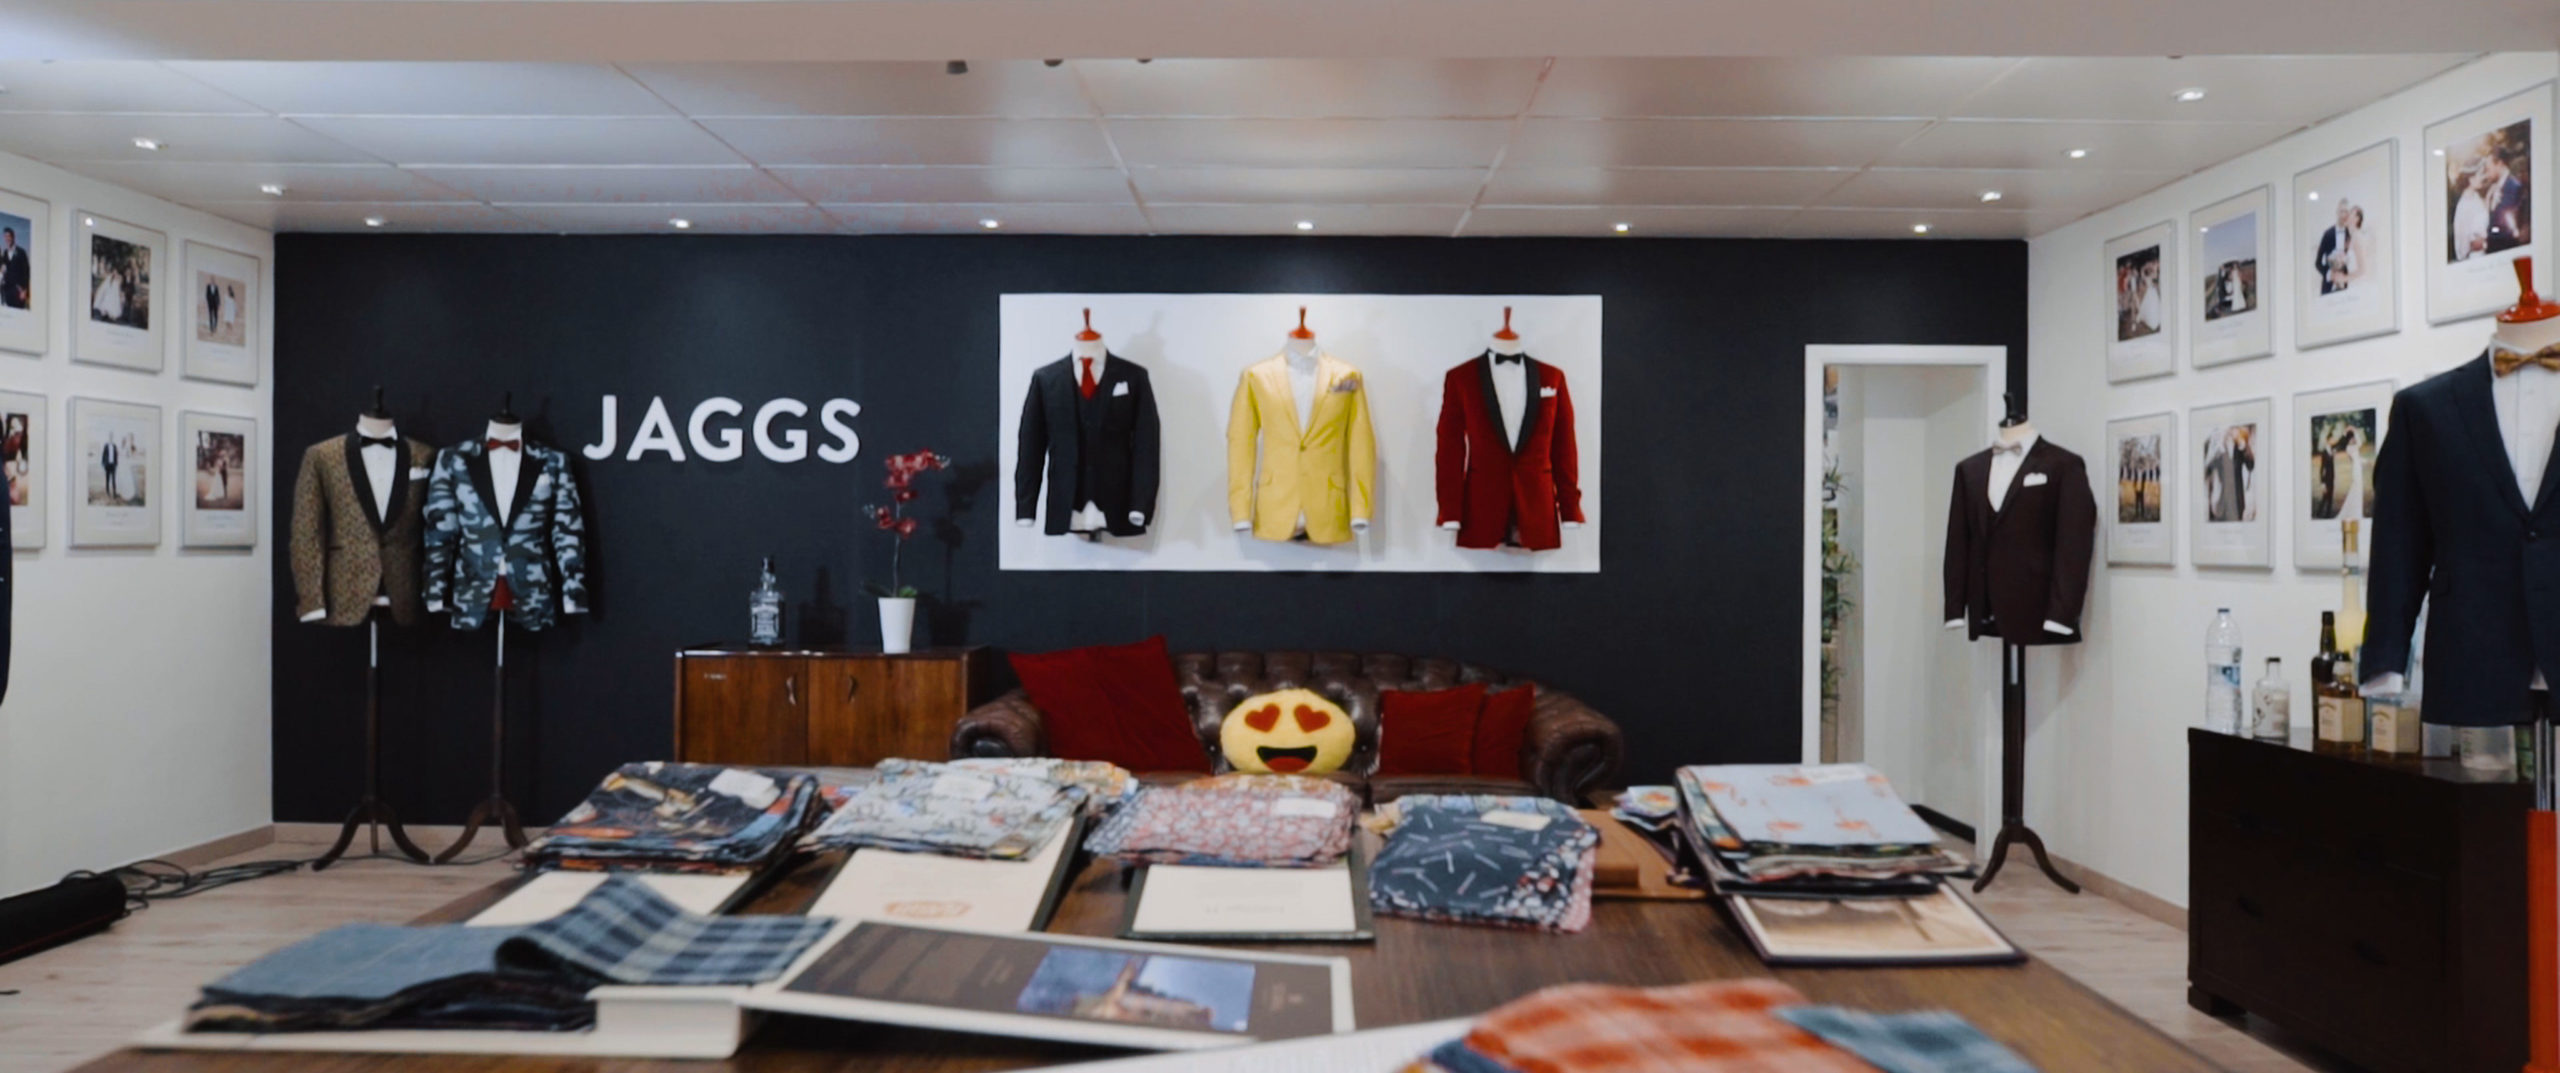 Jaggs Store by InVisual